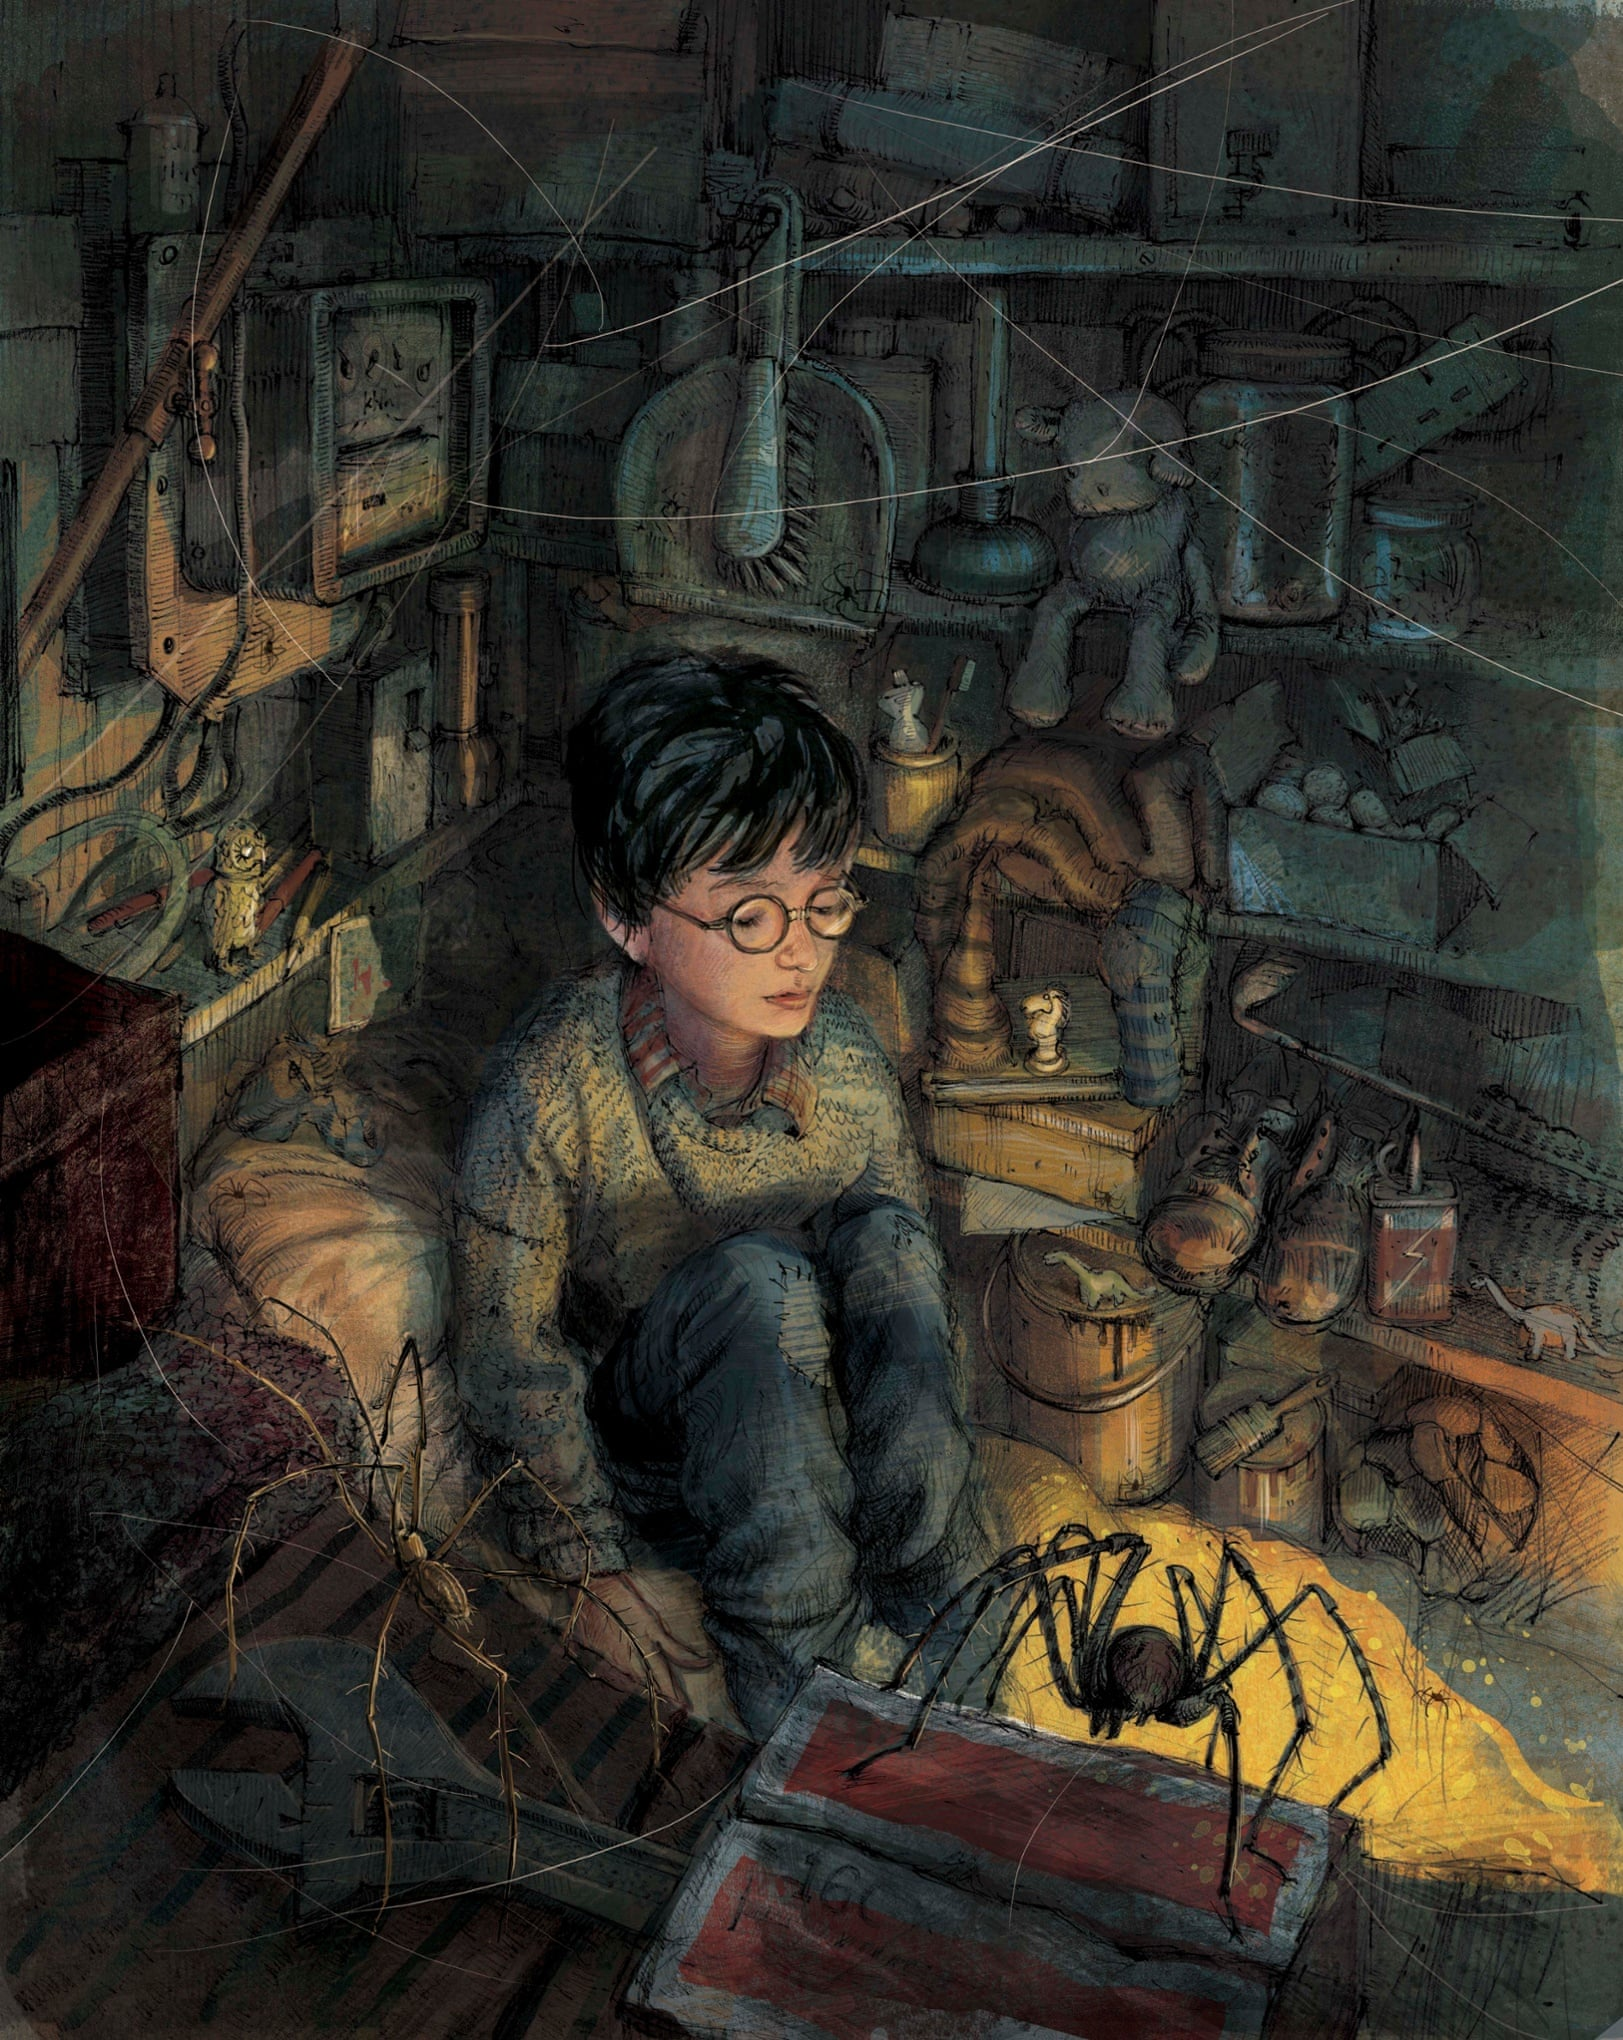 Illustration of Harry Potter in the cupboard under the stairs.